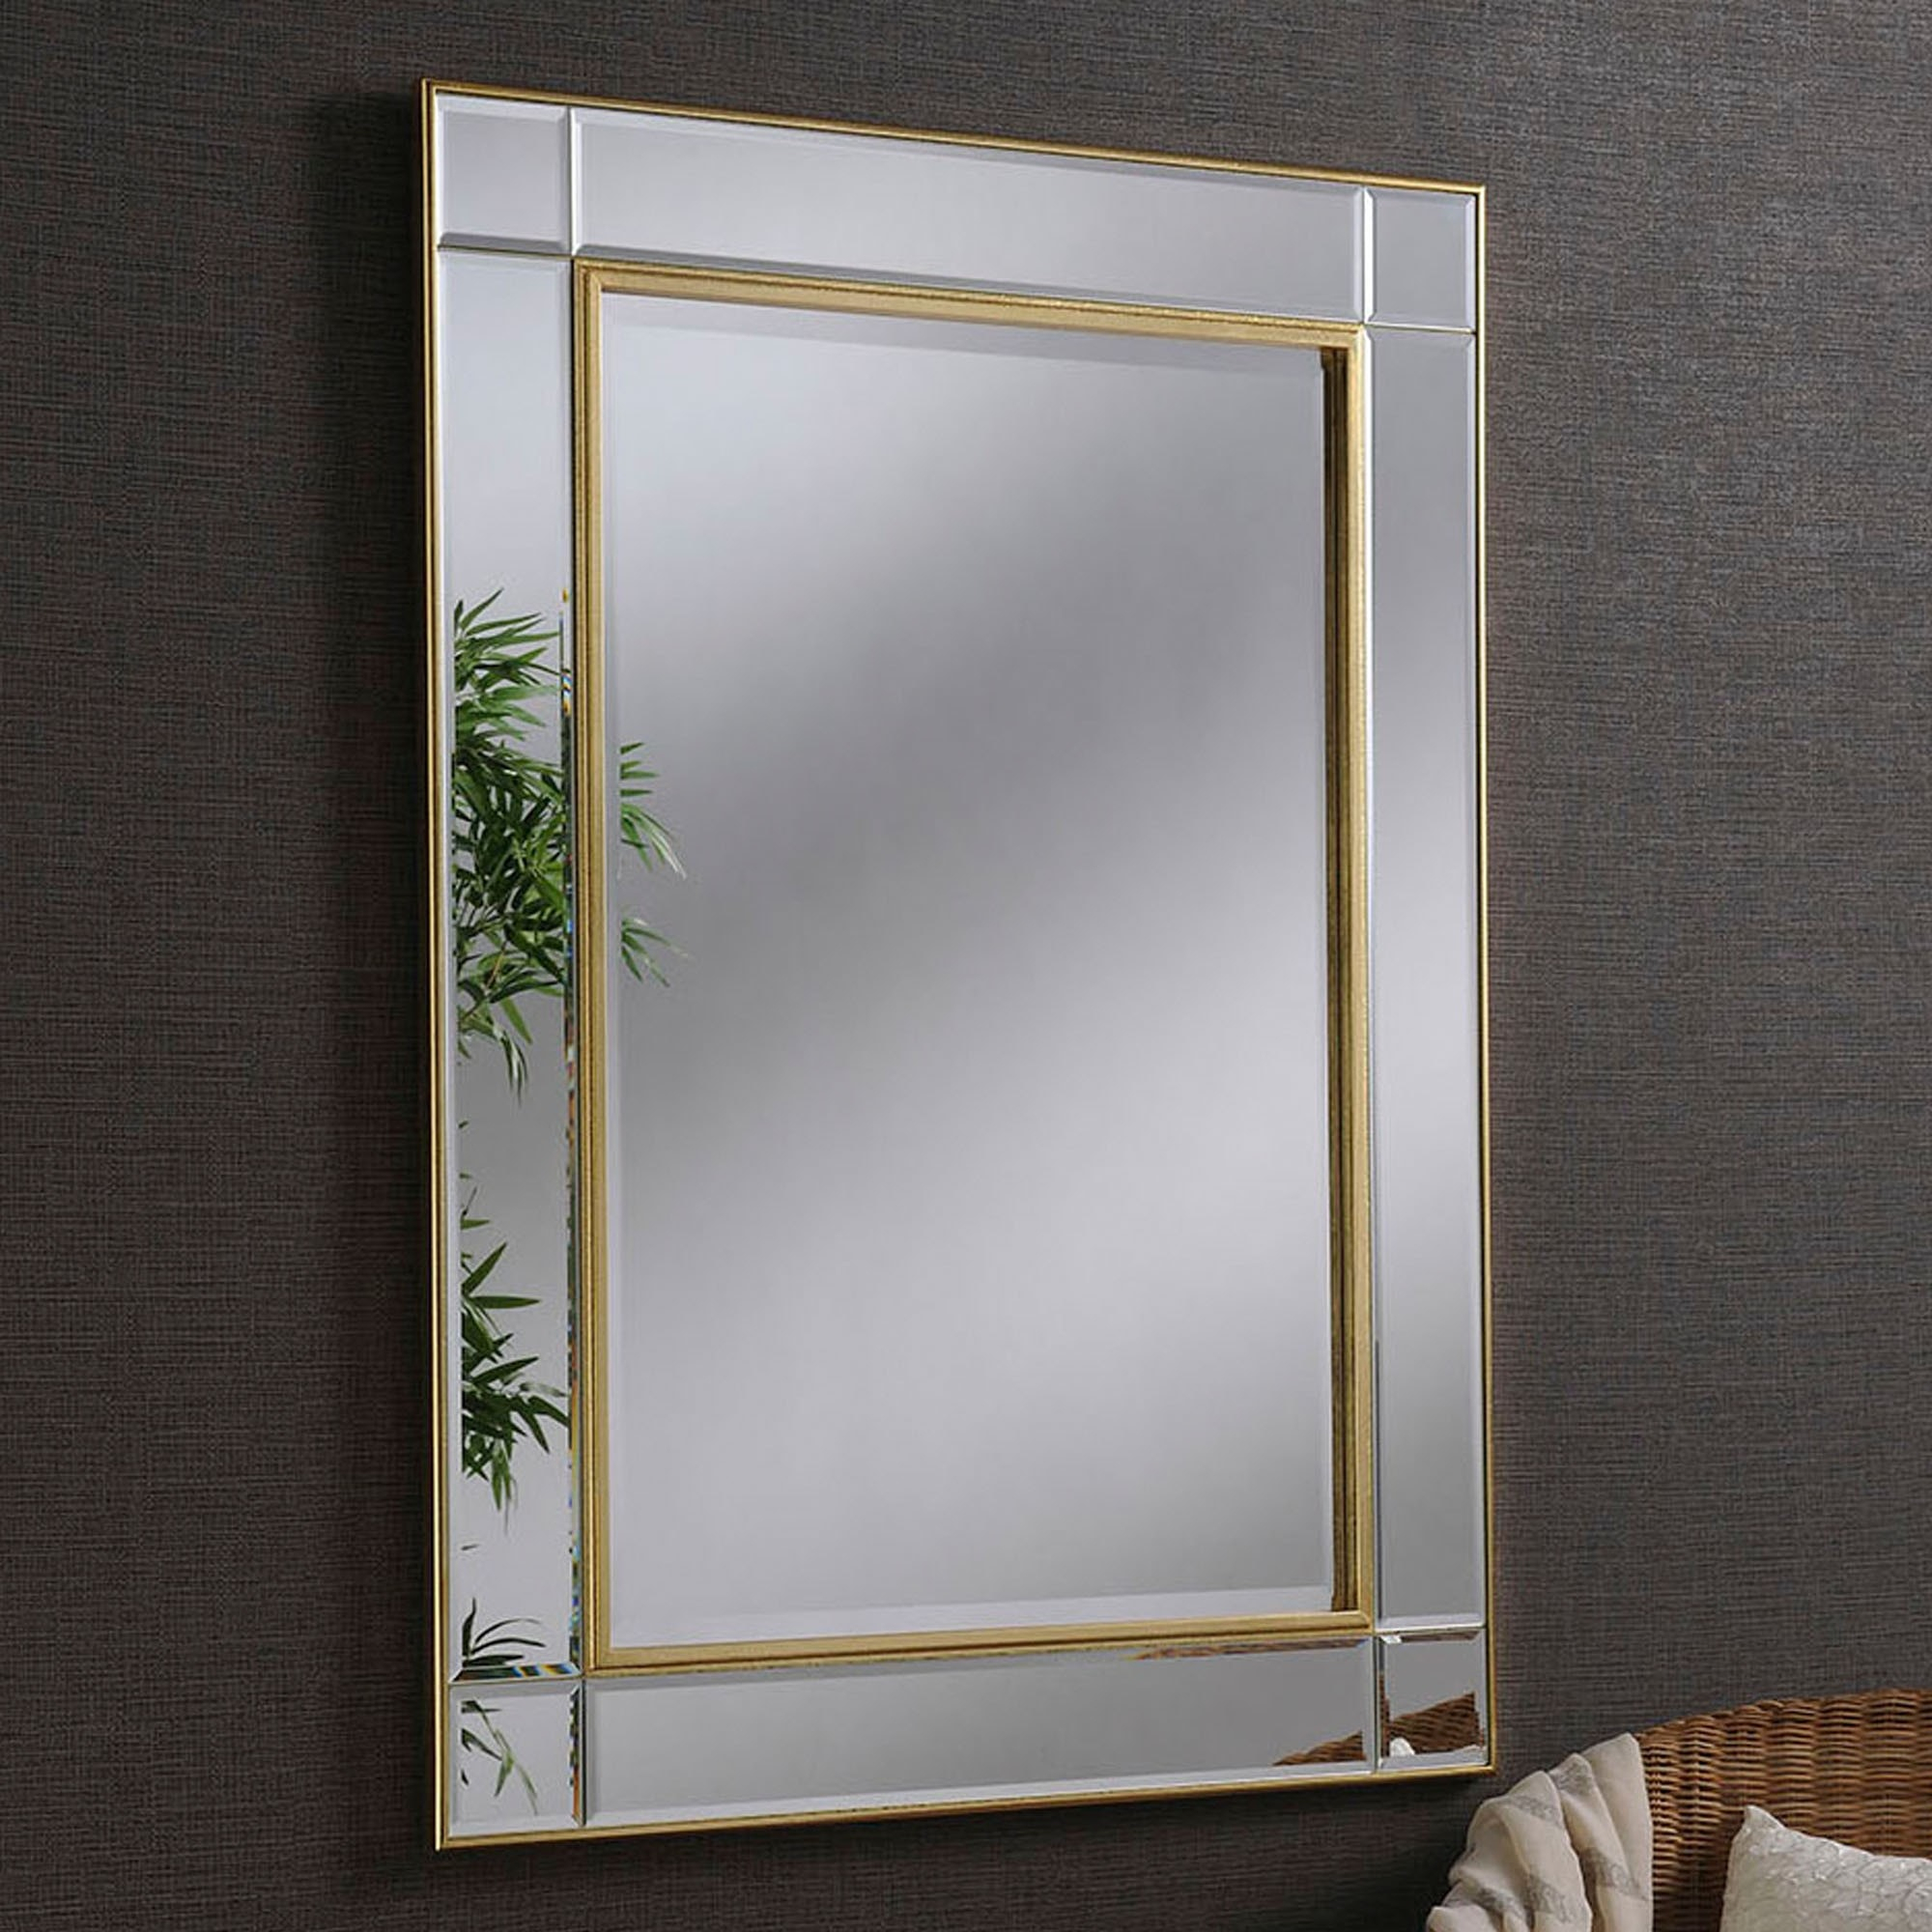 Contemporary Gold Beveled Wall Mirror Pertaining To Modern & Contemporary Beveled Wall Mirrors (View 6 of 20)